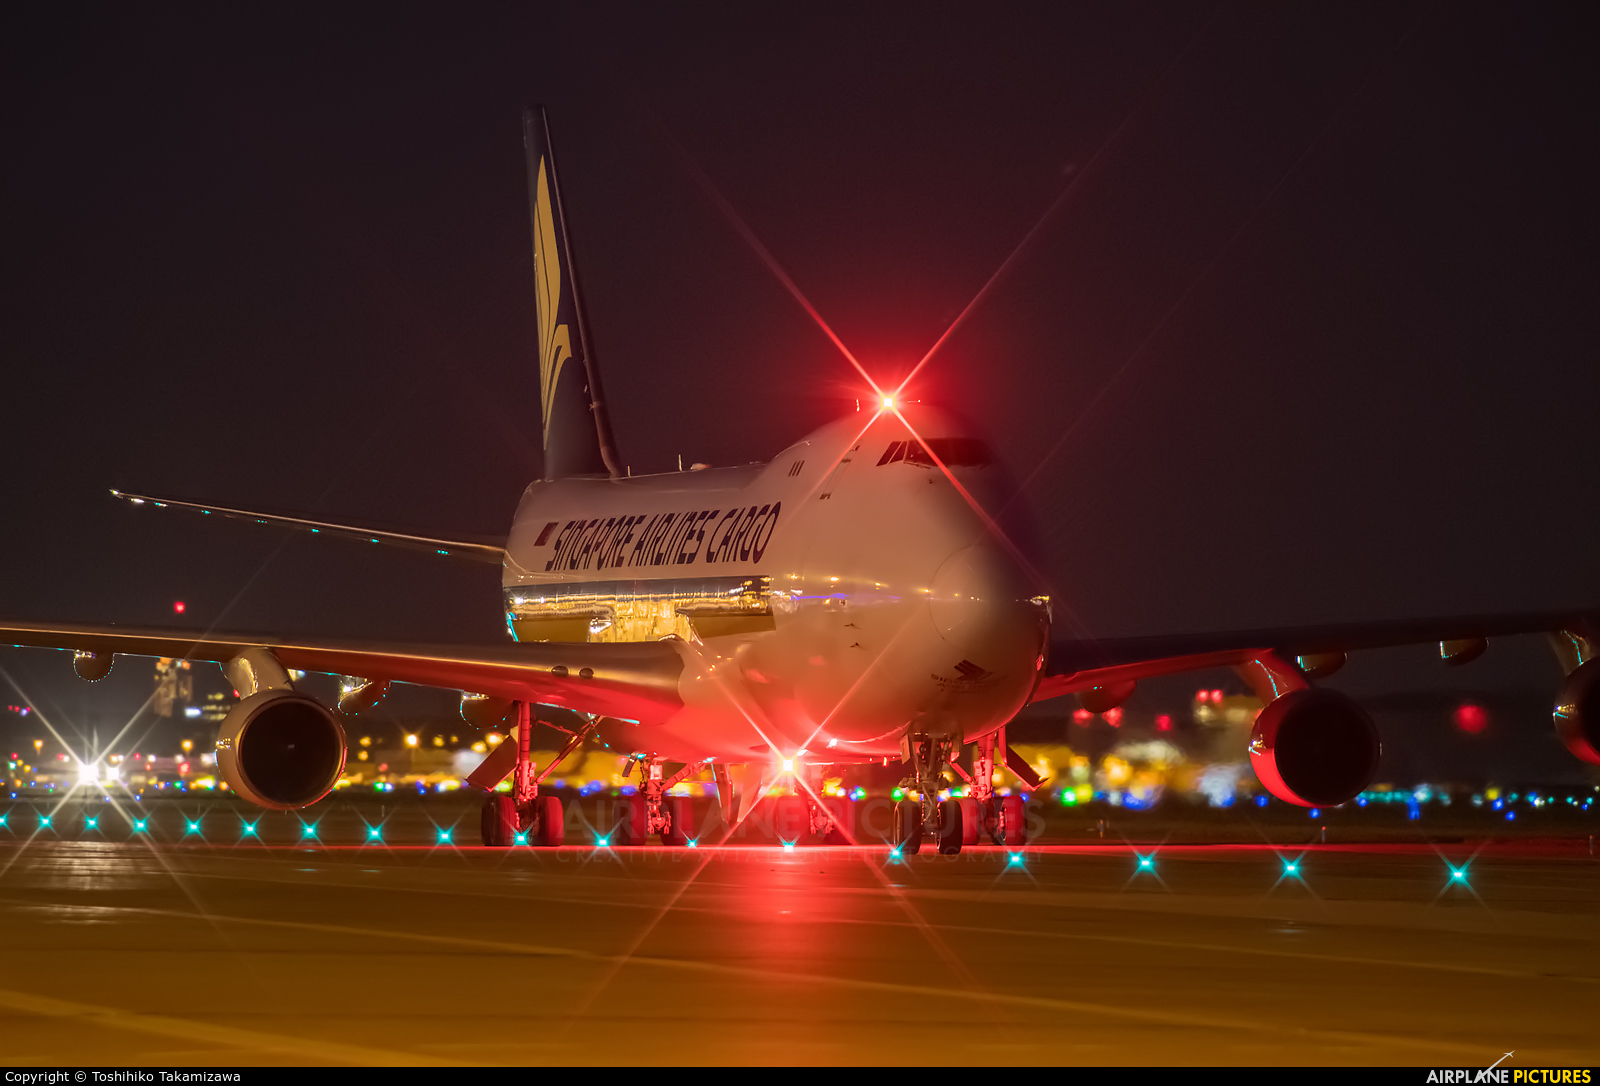 Singapore Airlines Cargo 9V-SFI aircraft at Amsterdam - Schiphol